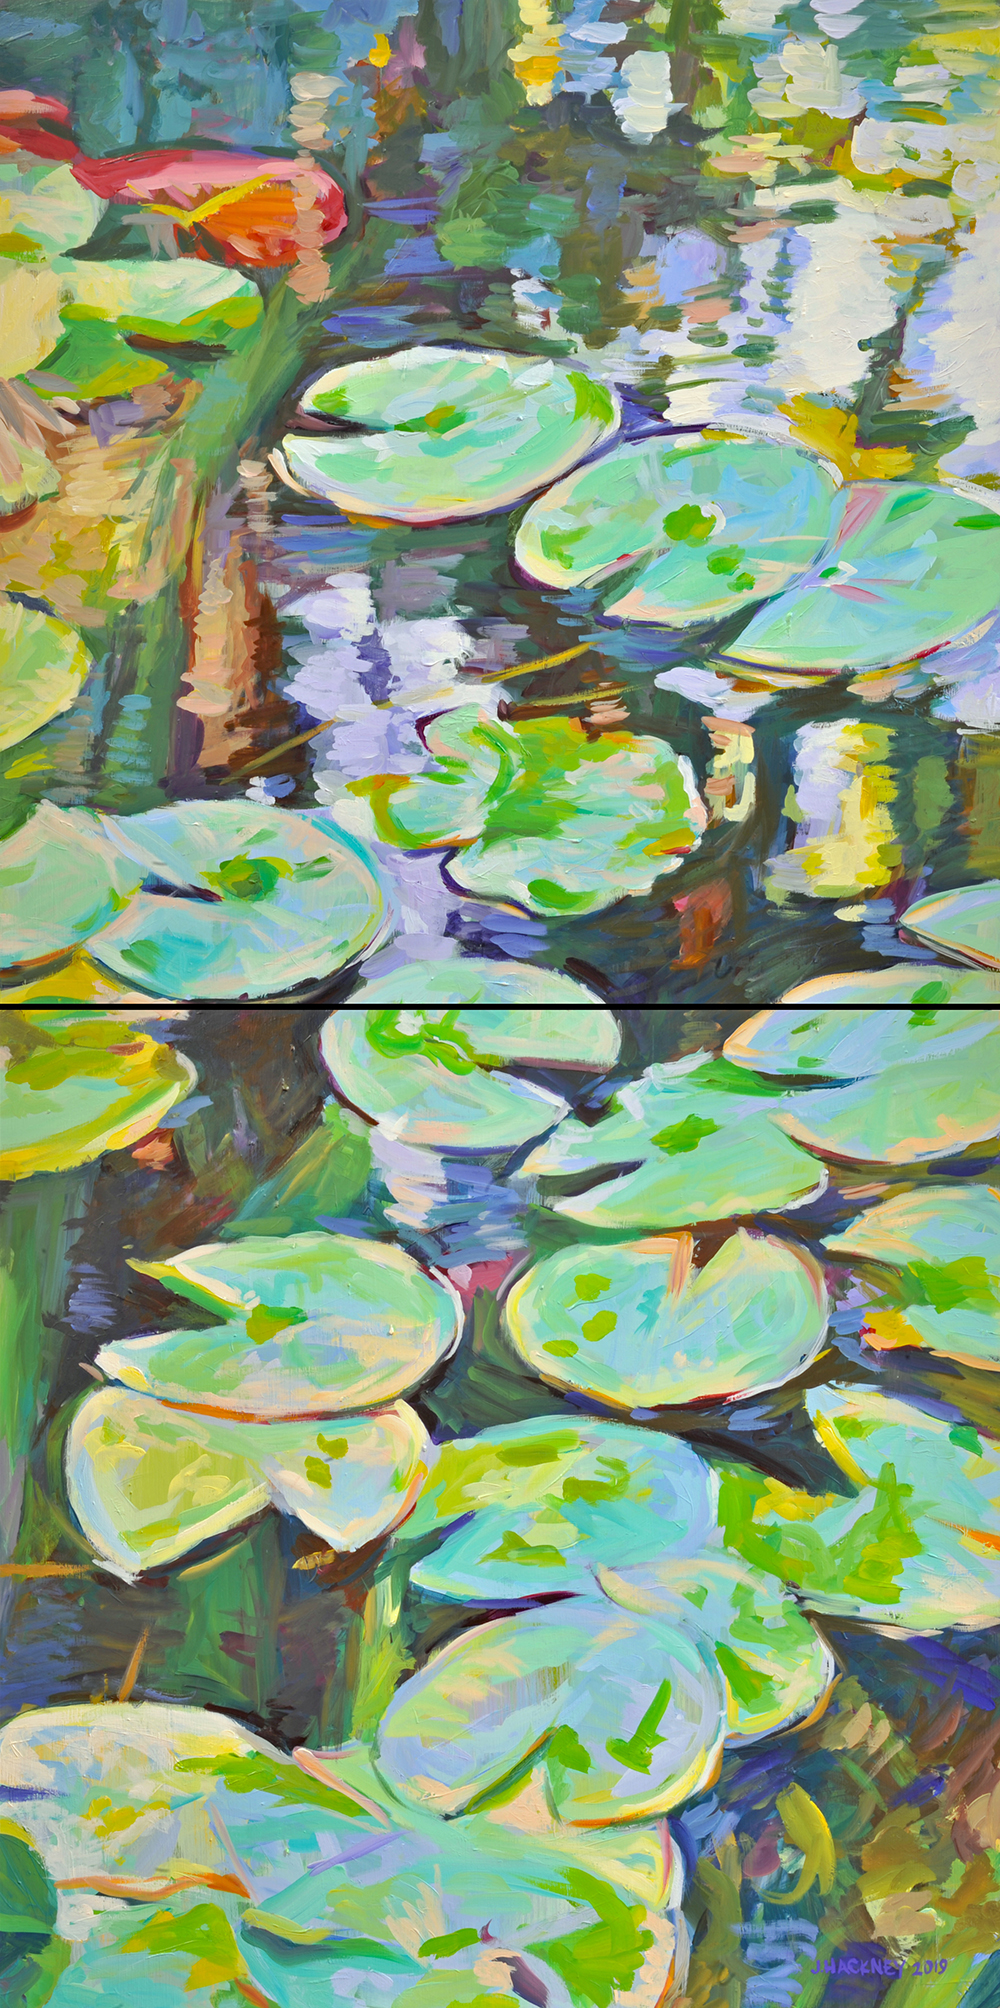 WATER LILY diptych, 30 x 60 IN